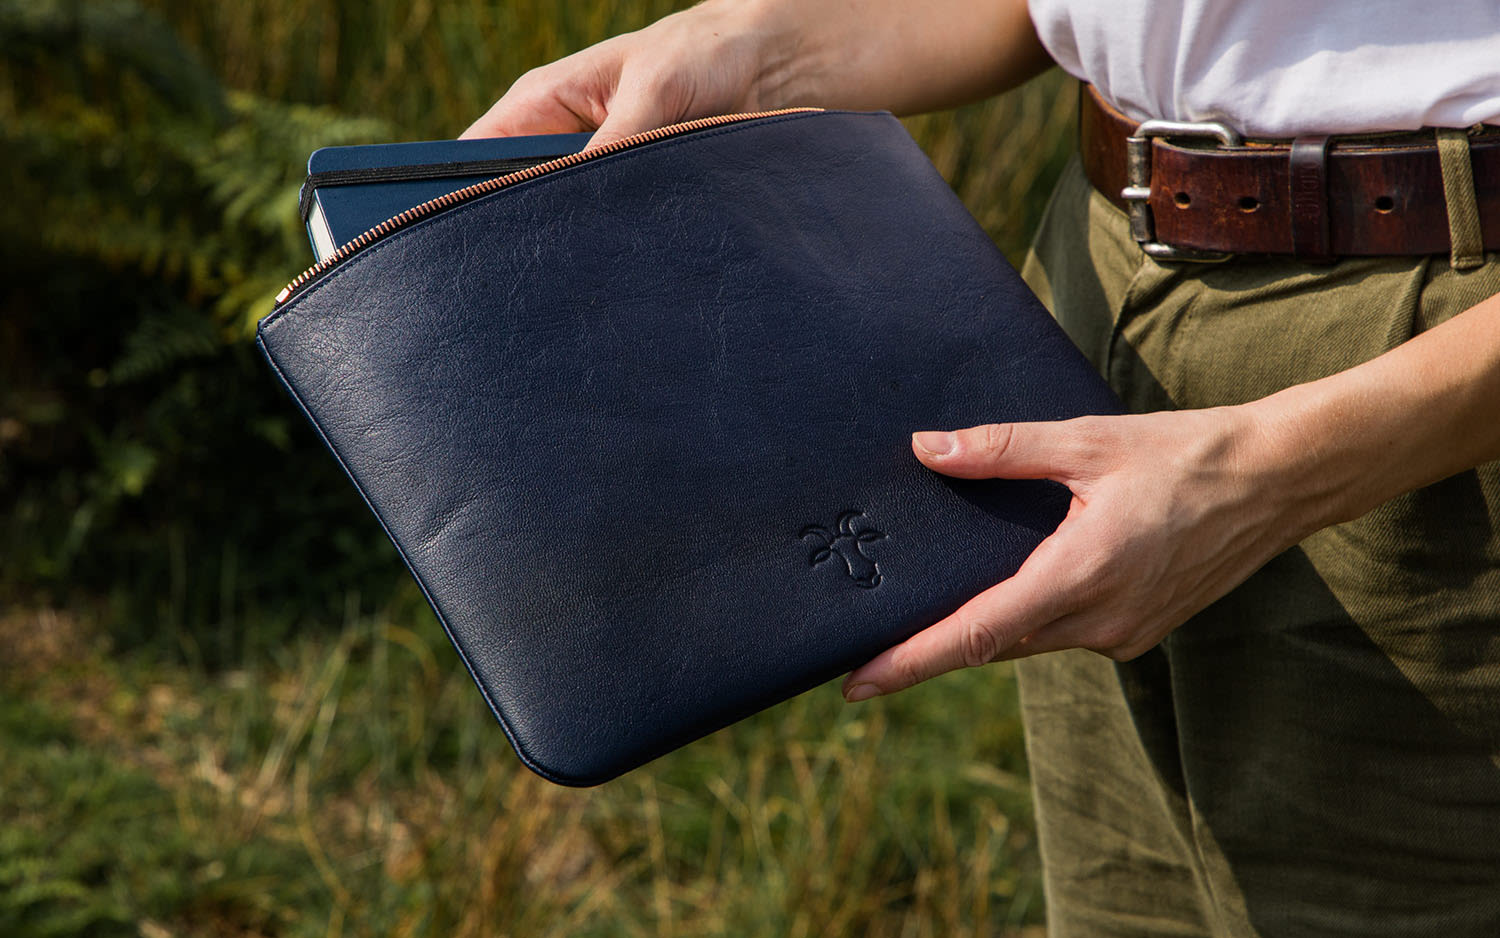 A man holding a leather laptop sleeve